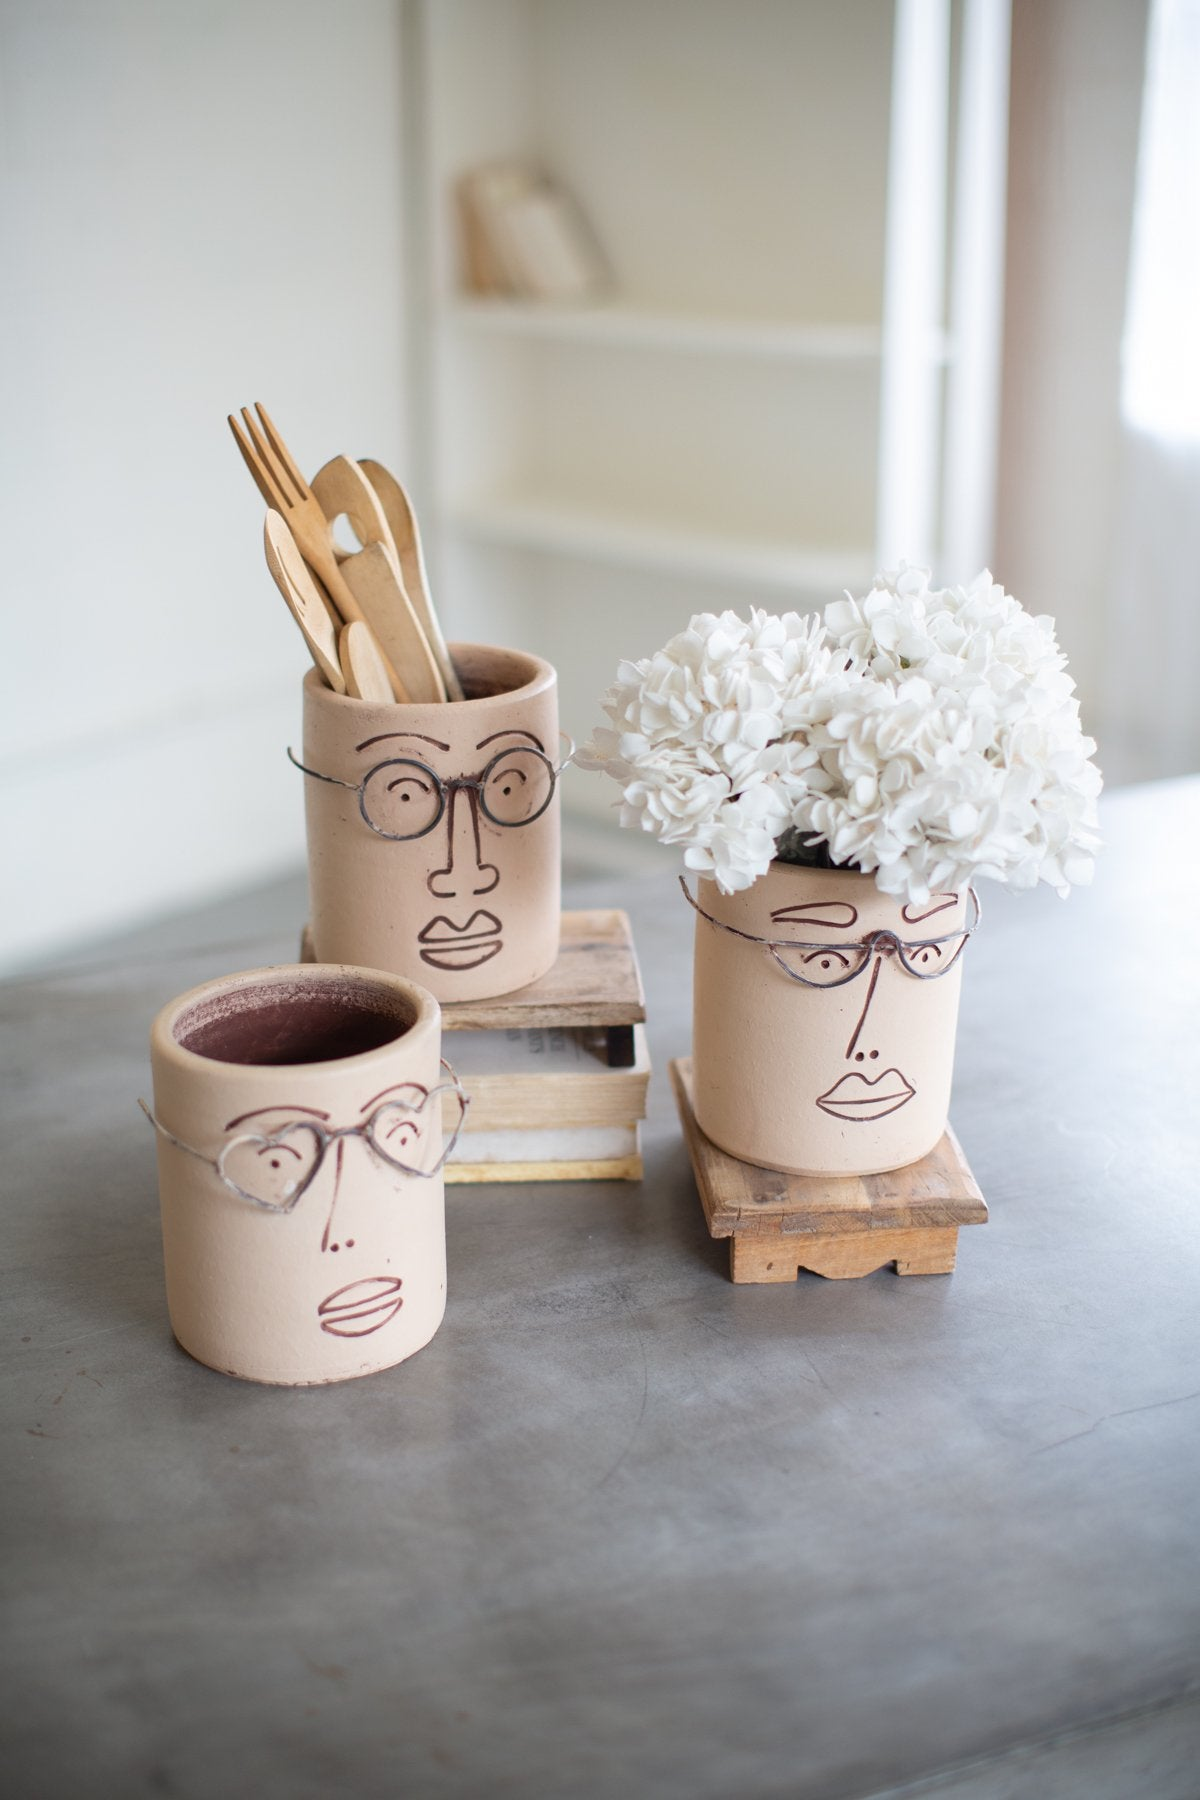 Set of 3 Clay Face Planters With Wire Glasses